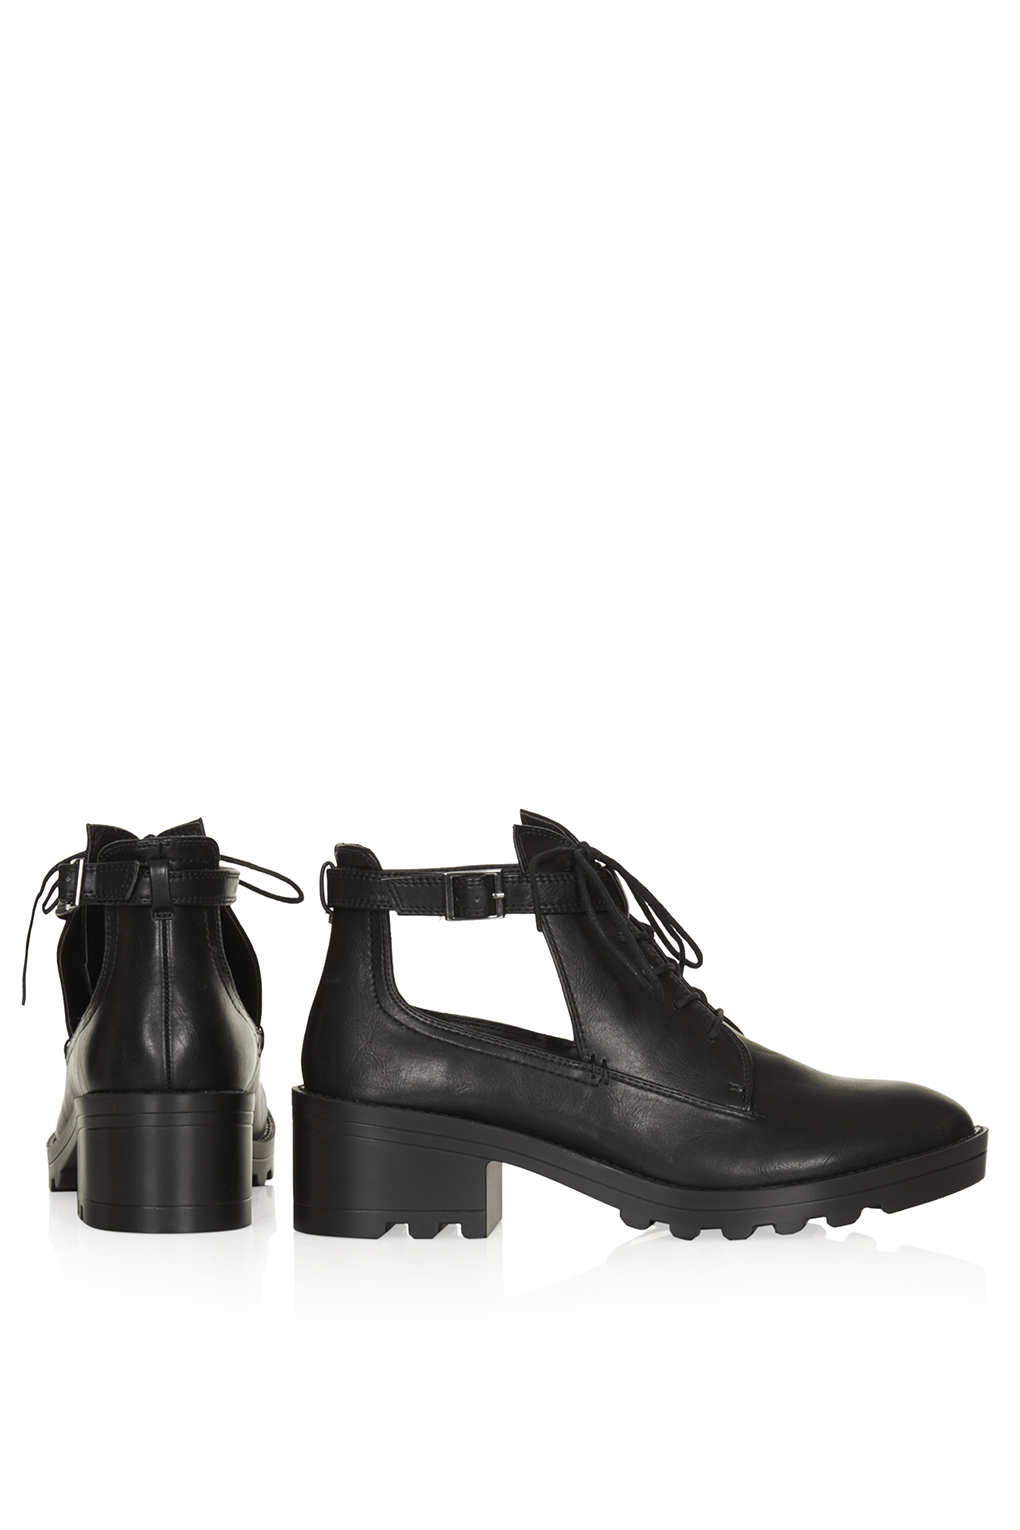 TOPSHOP Buggle Lace Up Cut Out Boots in Black